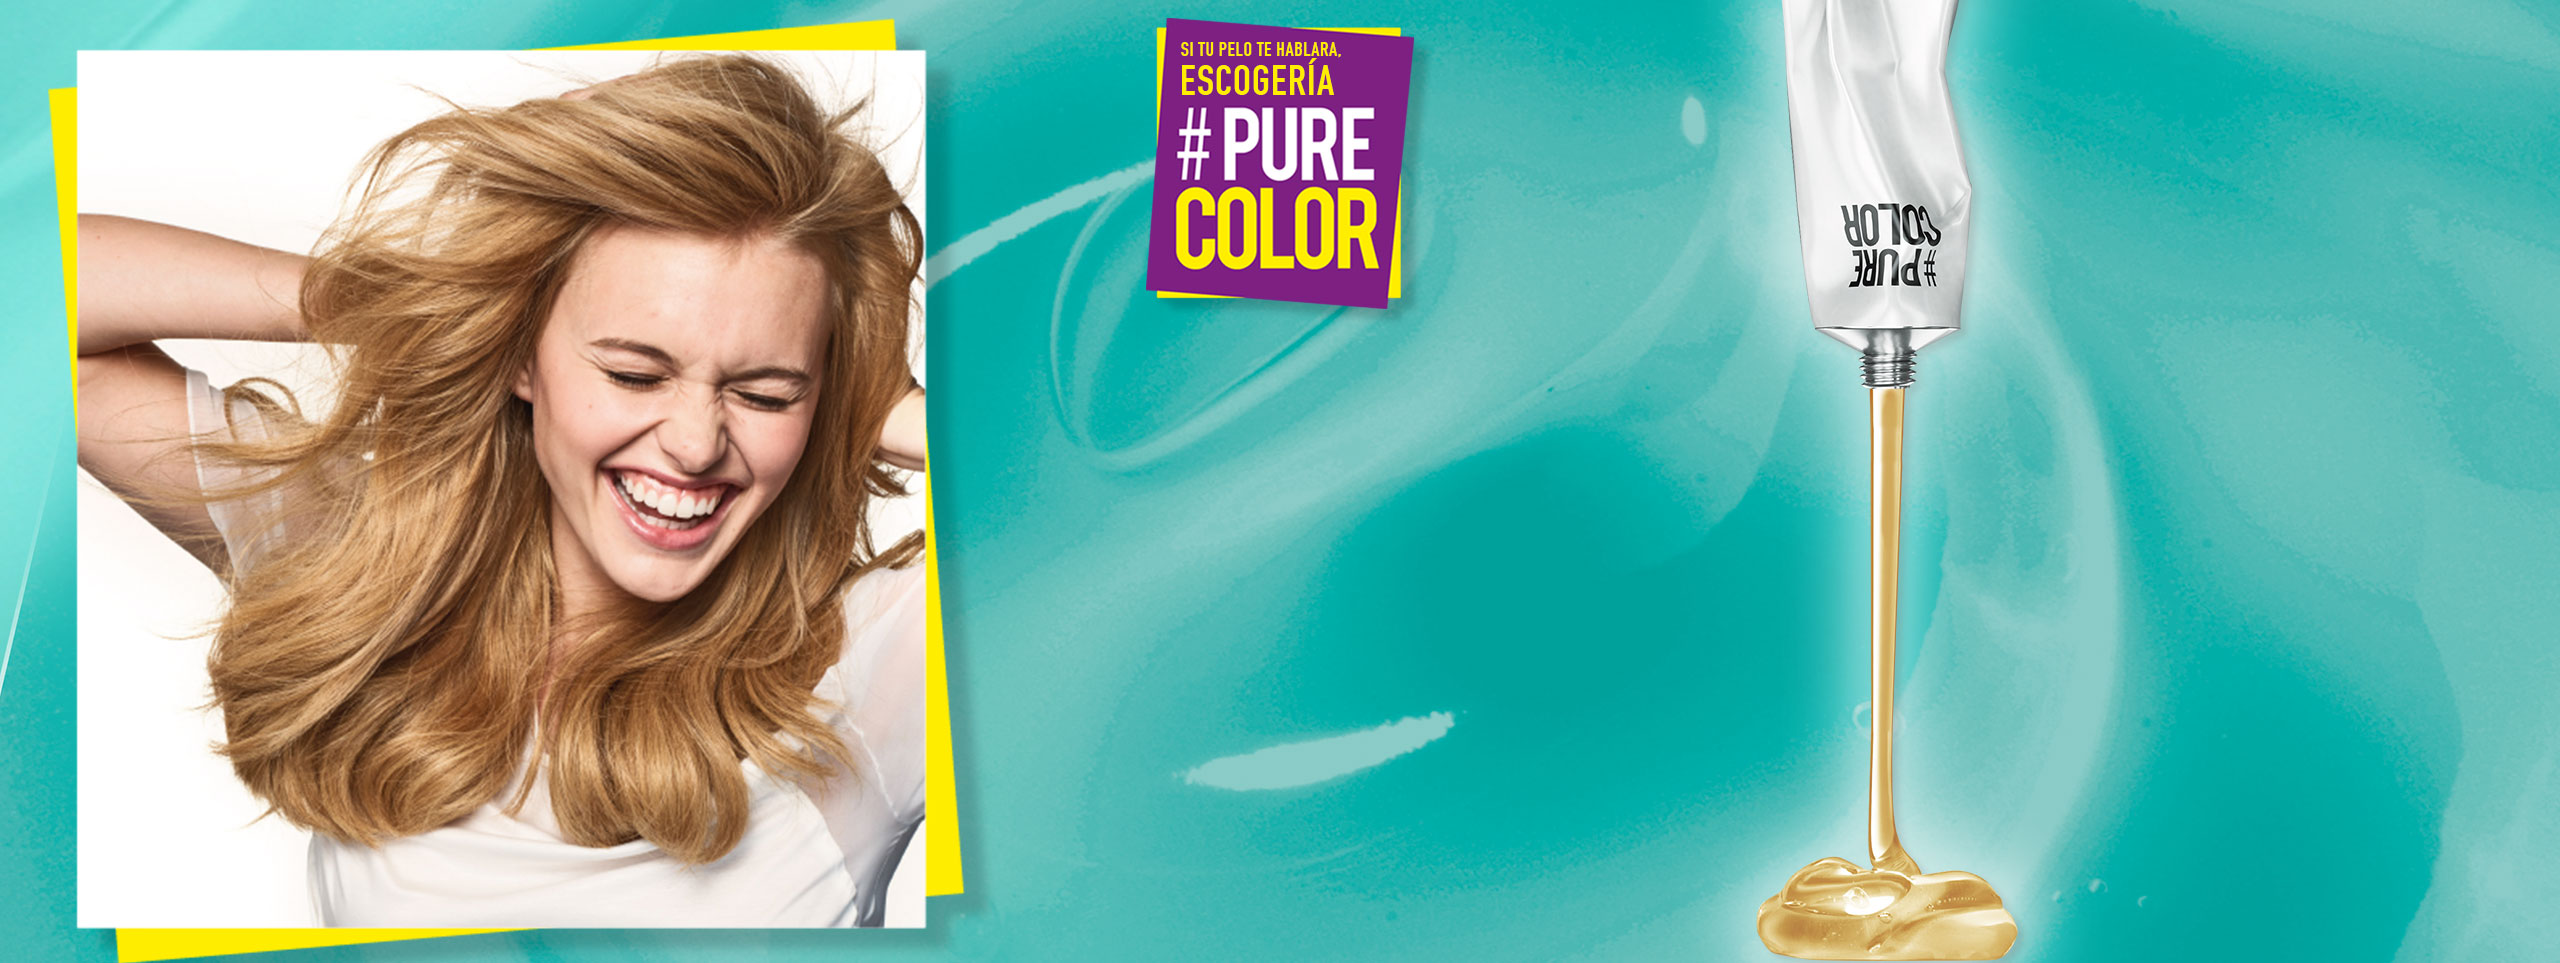 pure-color_rubios